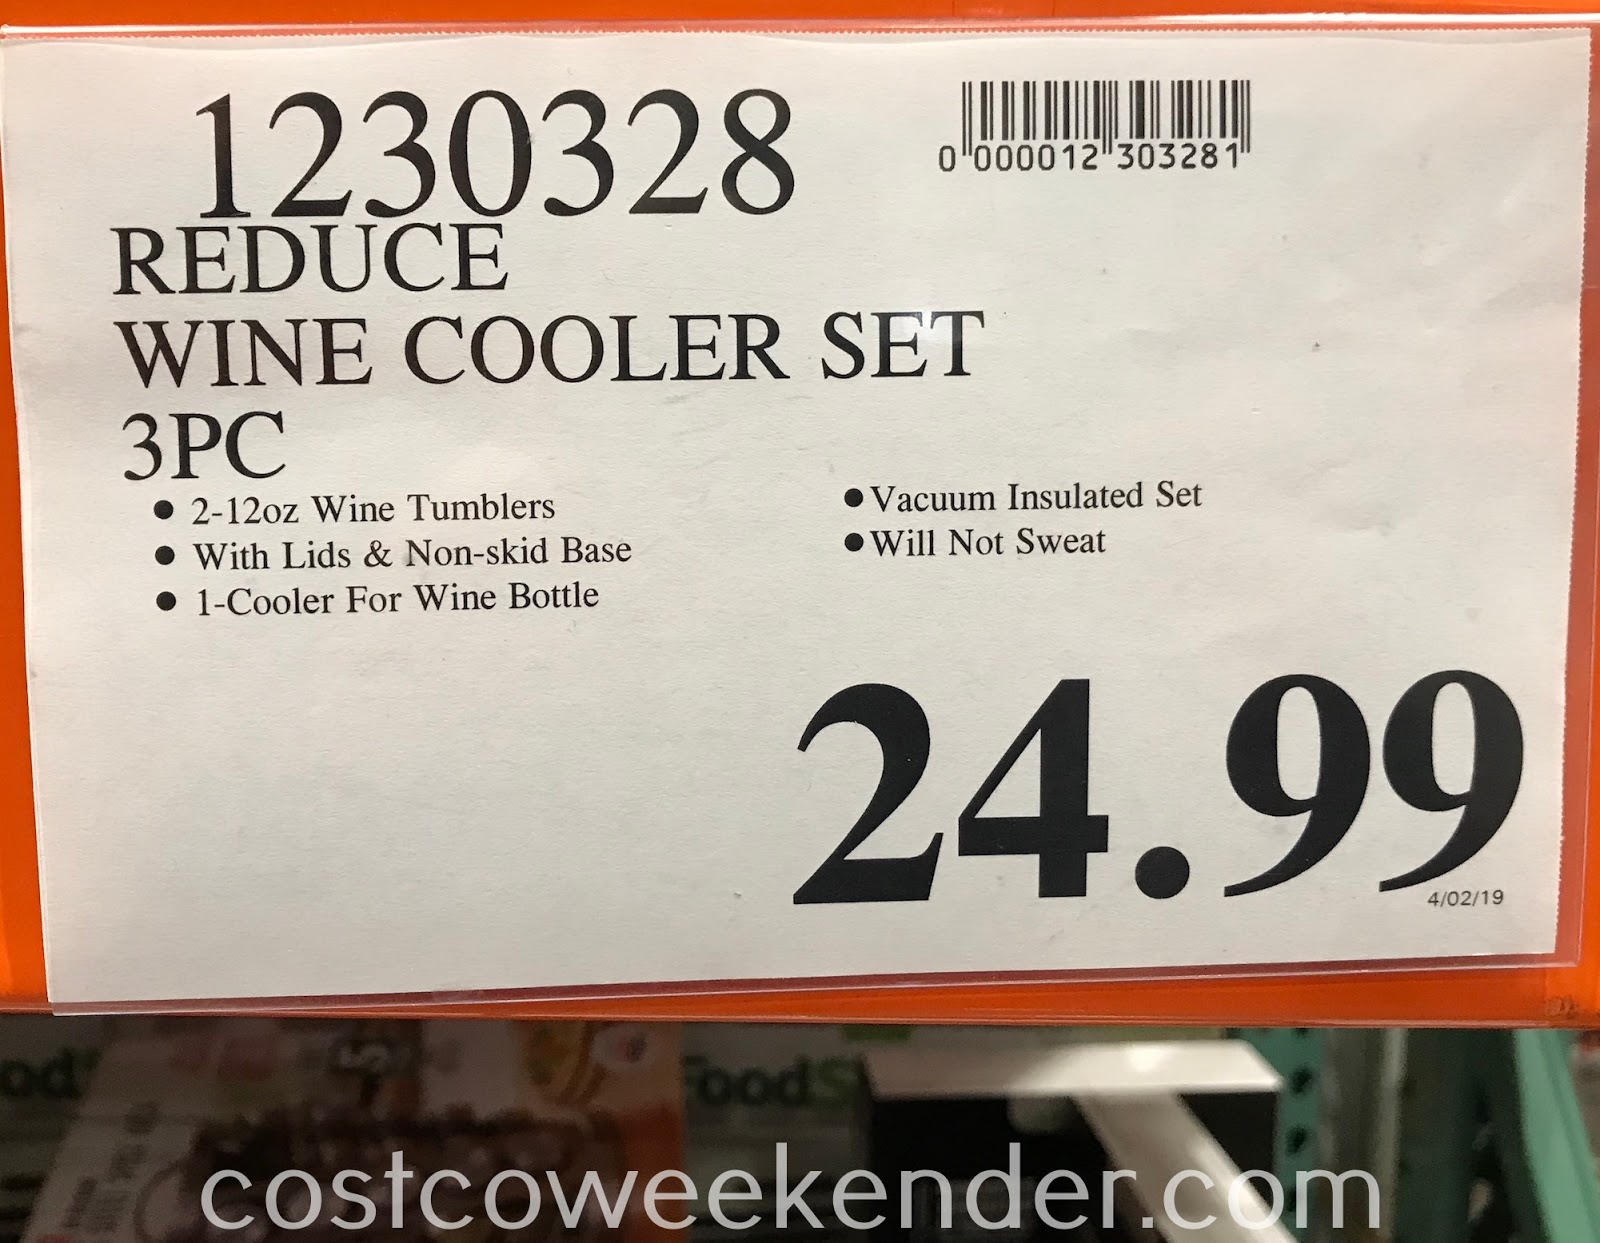 Deal for the Reduce Wine Cooler Set at Costco